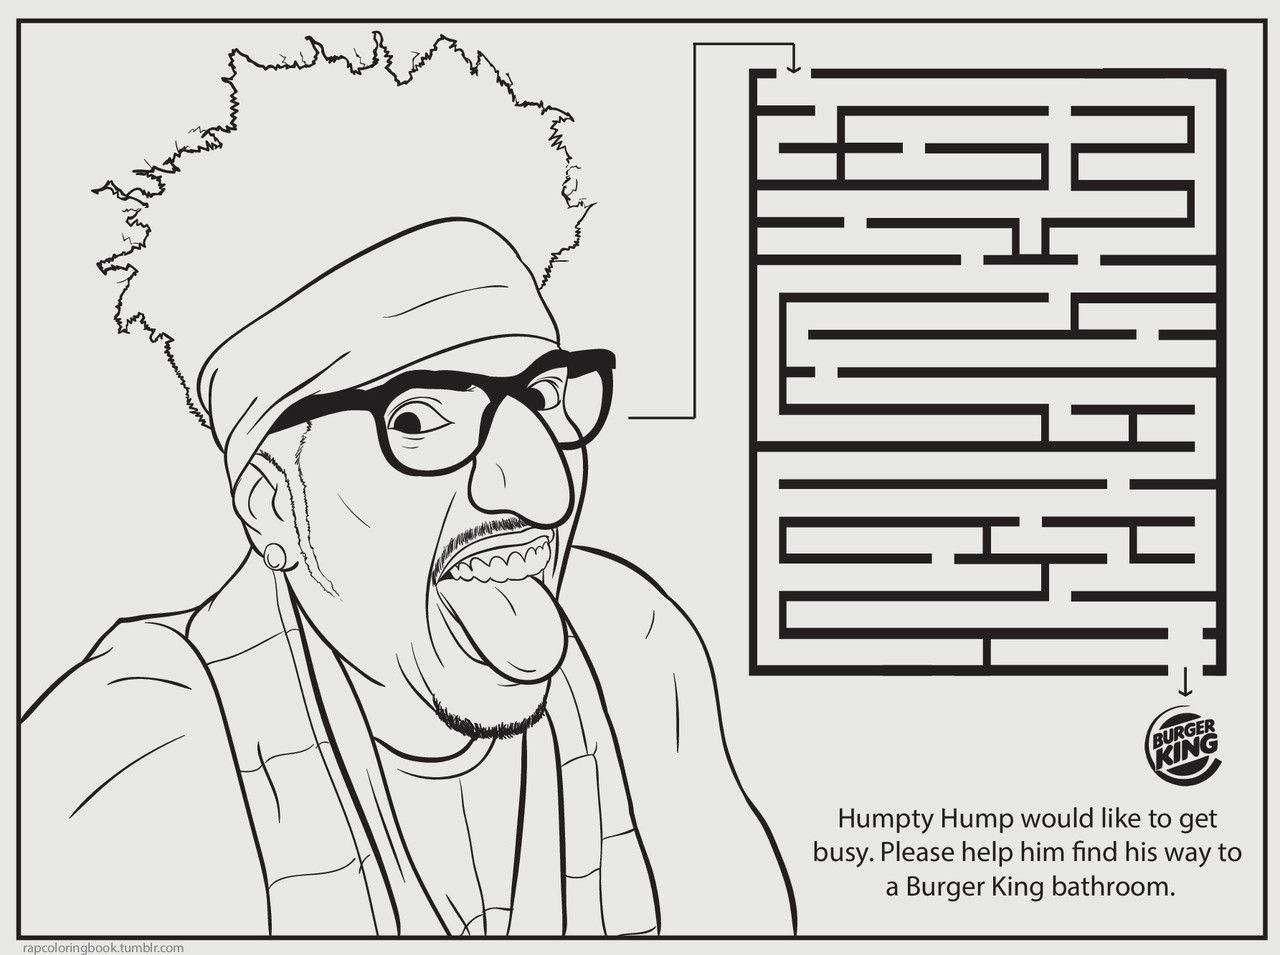 Humpty Hump Would Like To Get Busy Please Help Him Find His Way A Burger King Bathroom This Pin And More On Hip Hop Coloring Book